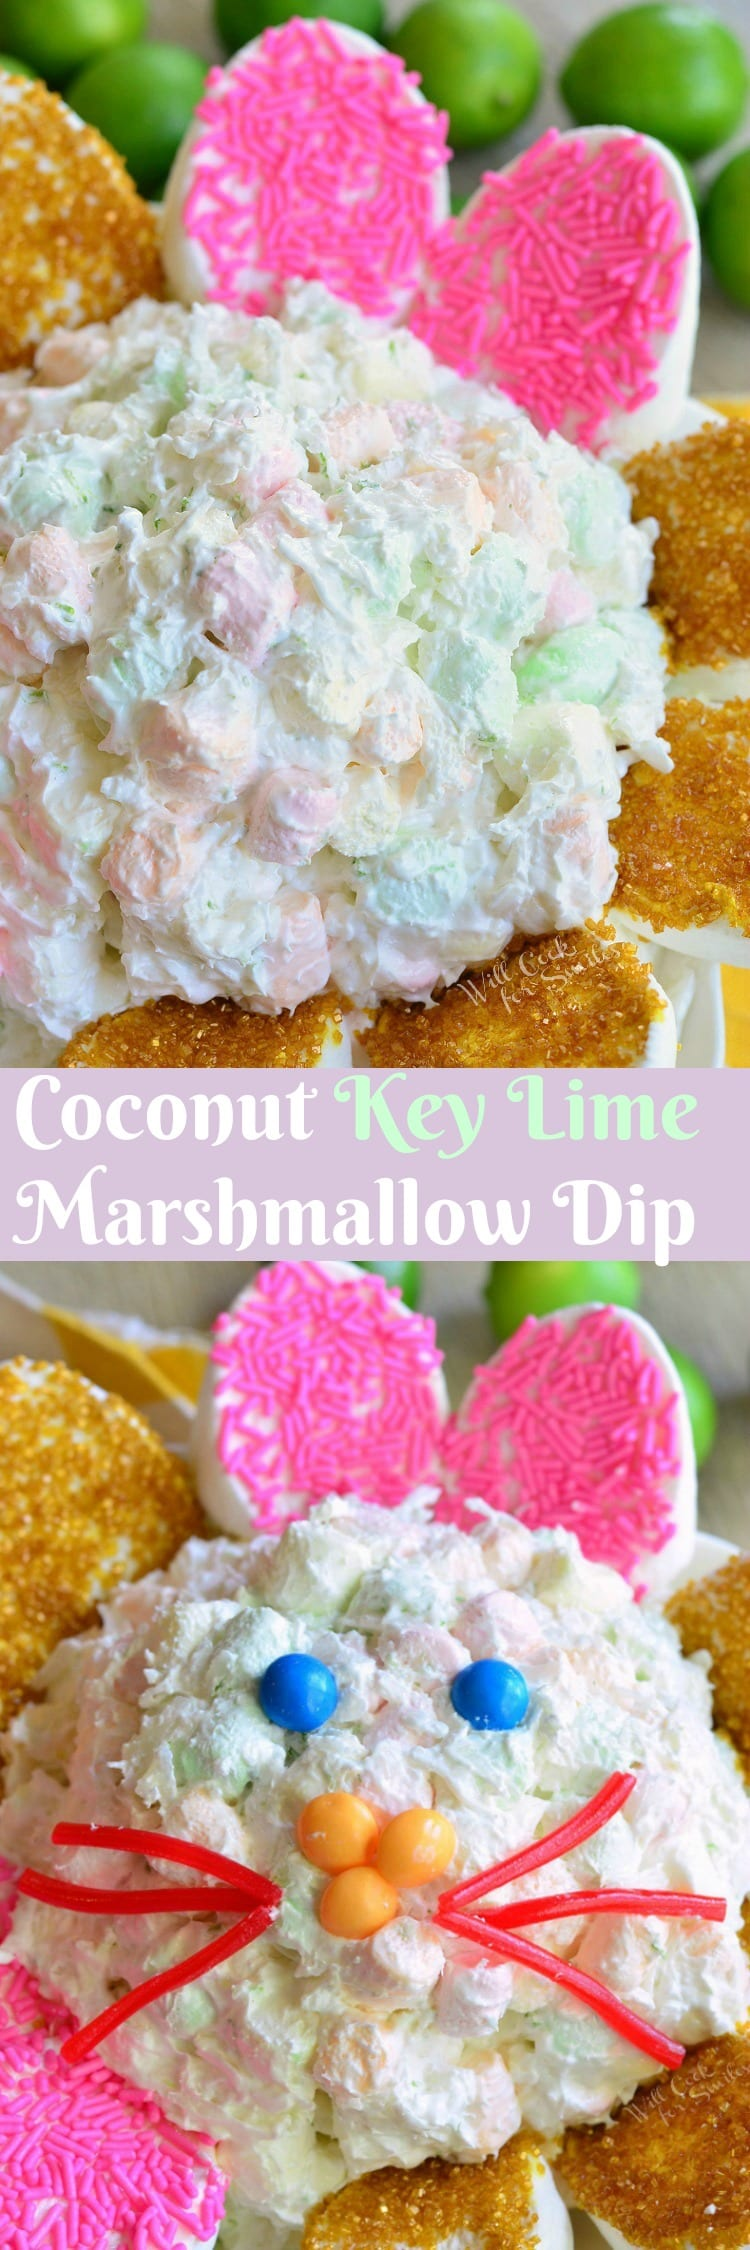 top photo Coconut Key Lime Marshmallow Dip bottom is dip made into bunny